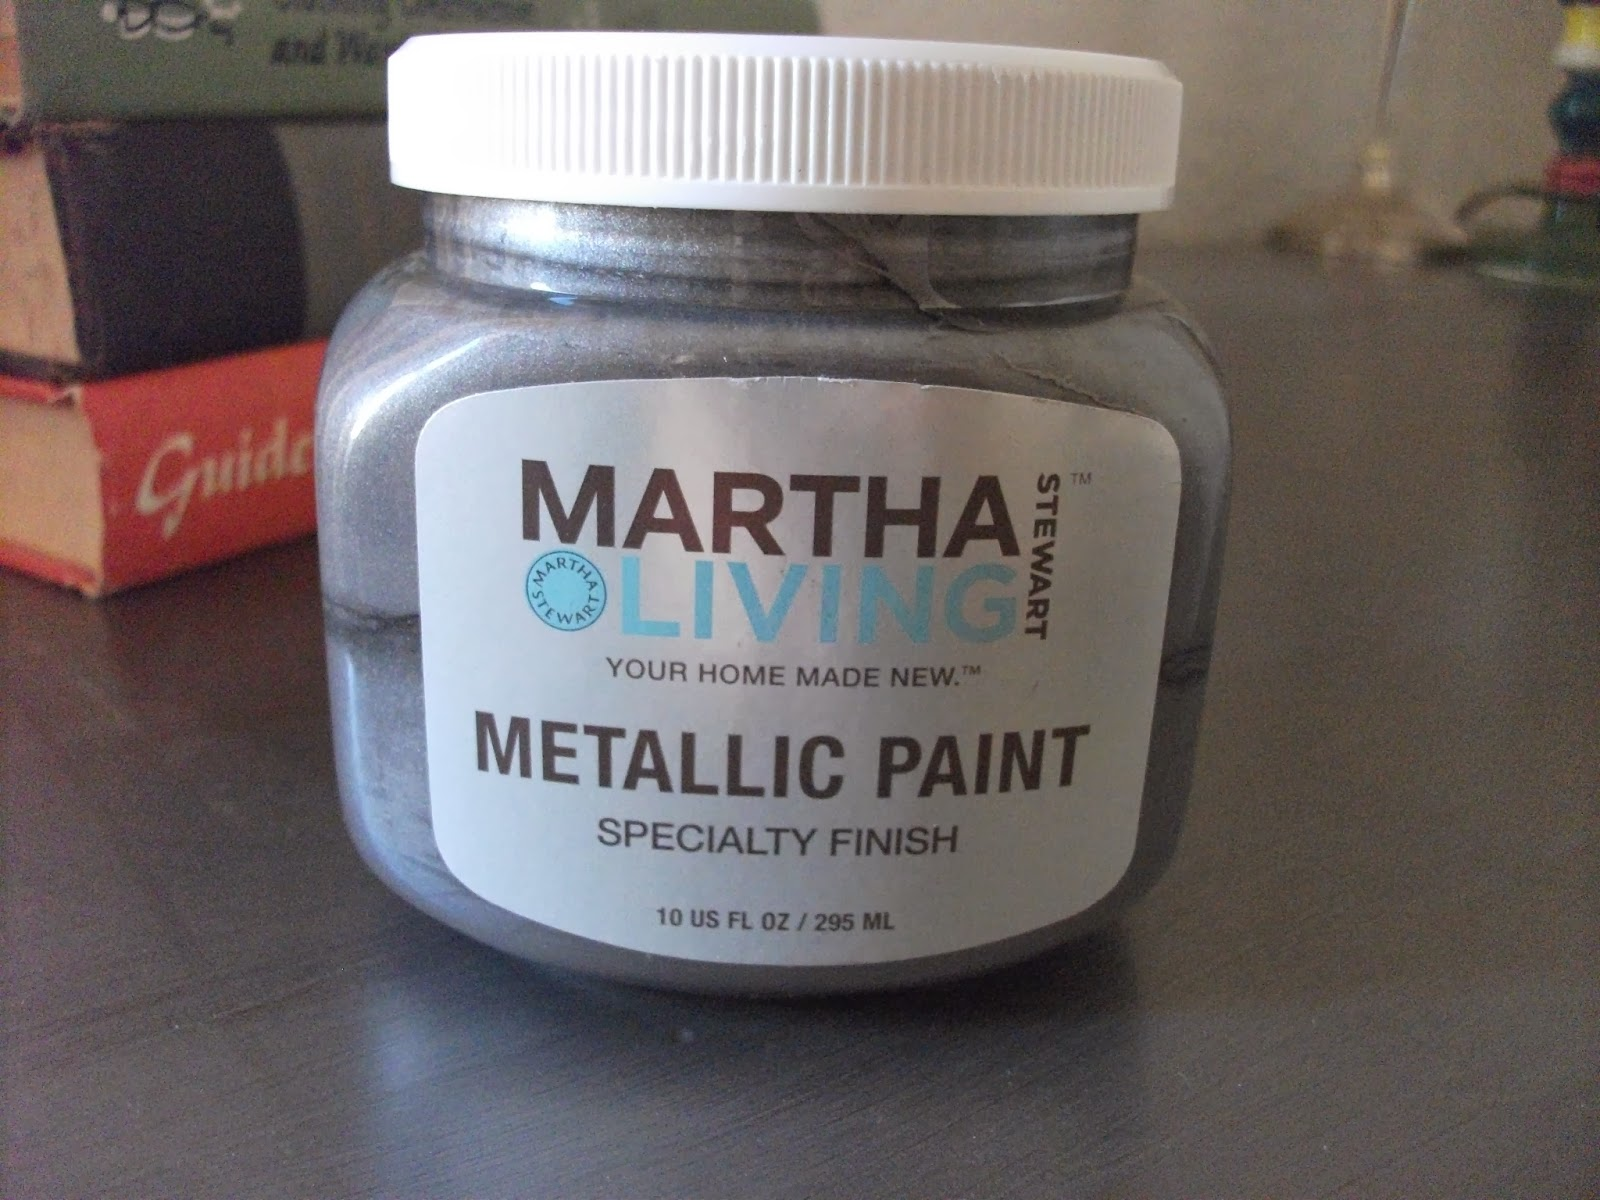 The Paint Color Is Thundercloud. Martha Stewart Living Metallic Paint. Love  It. Not A Paid Post, I Just Love This Paint. I Used The Copper On A  Highboy, ...